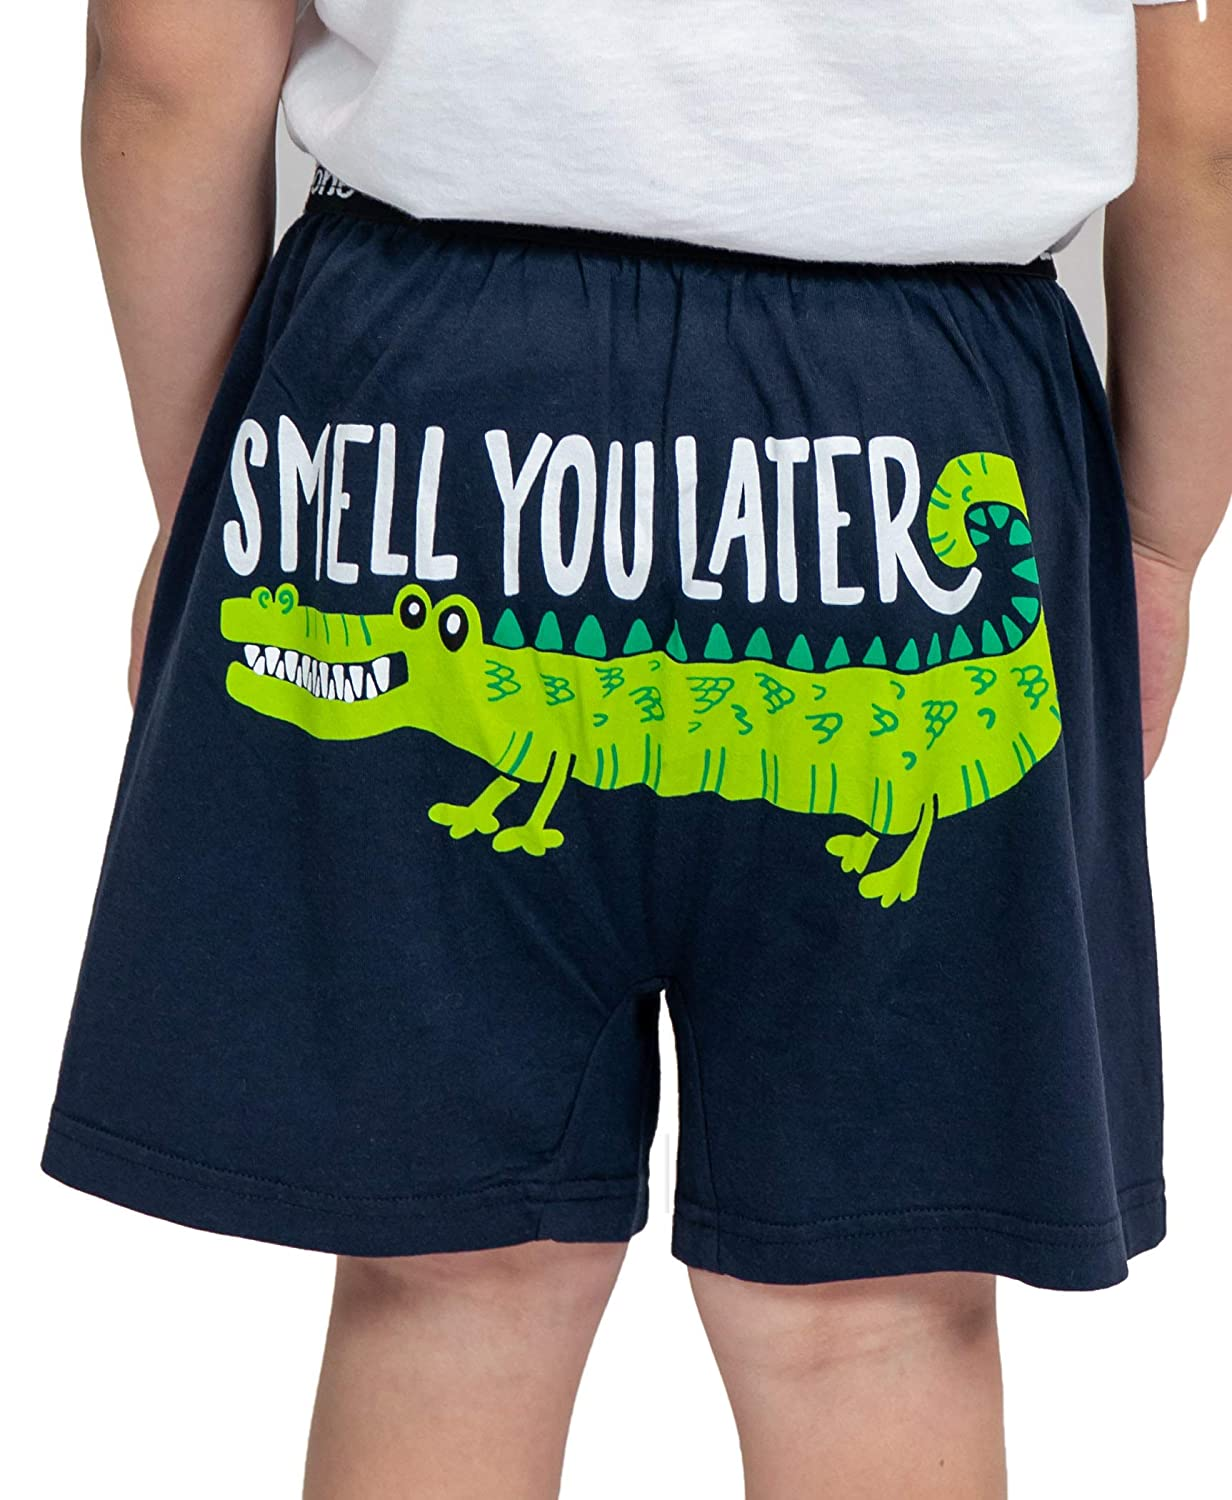 Boys Funny Animal Boxers by LazyOne Kids Comical Underwear